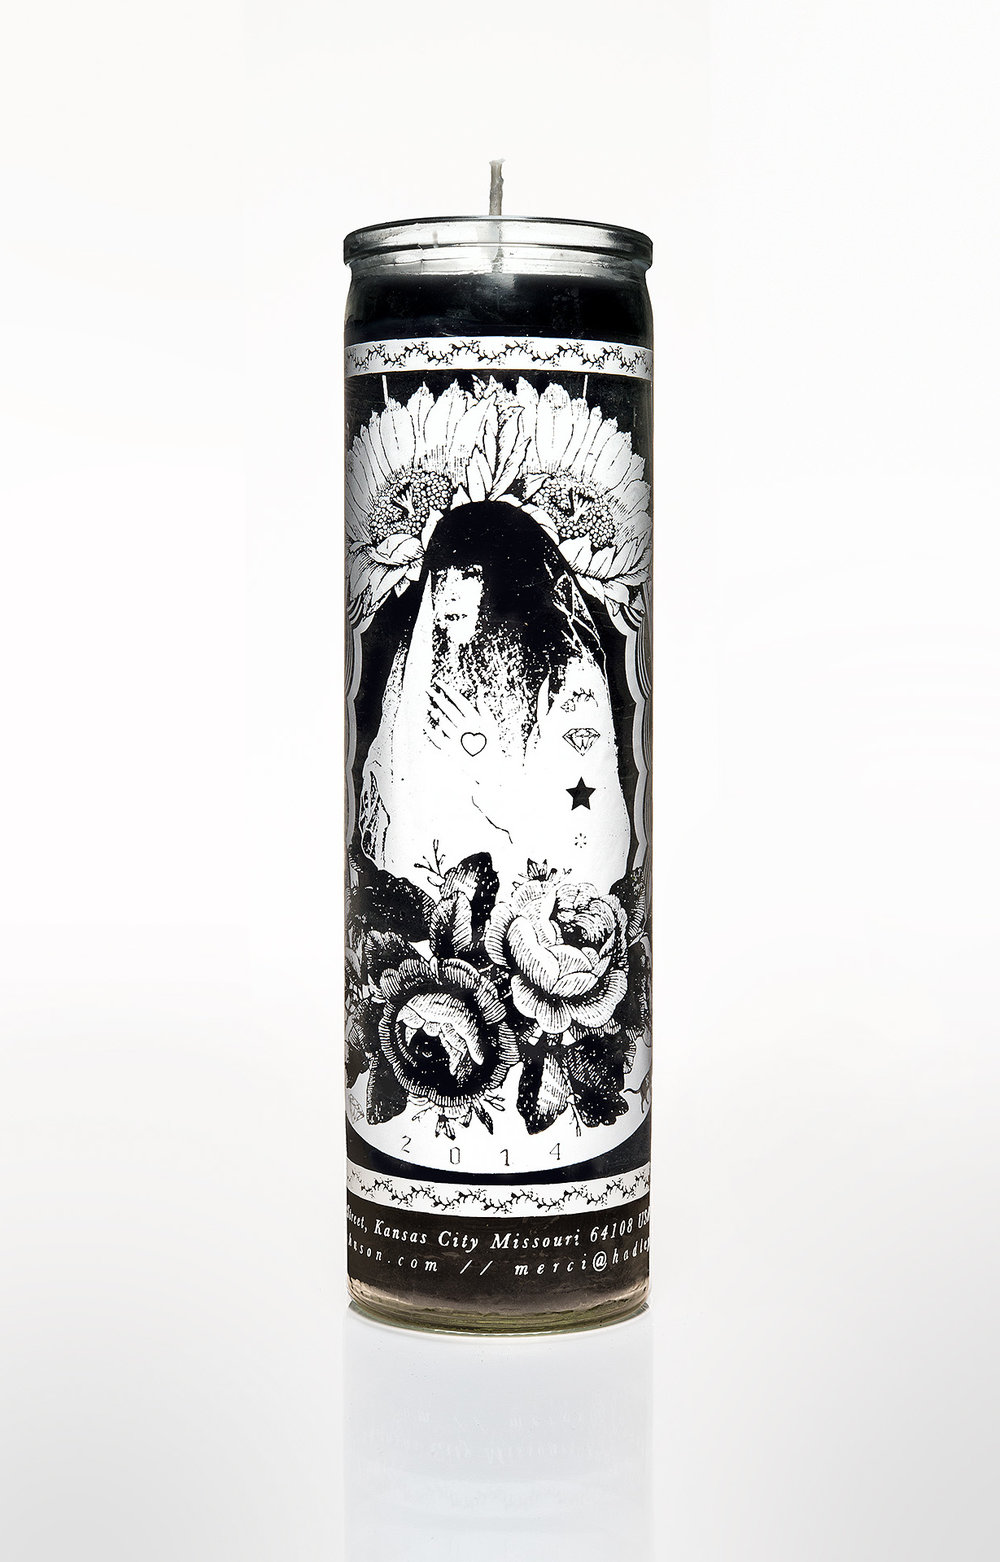 hadley prayer candle, 2014  original portrait: lauren thurman-king  graphic design: kelly clark